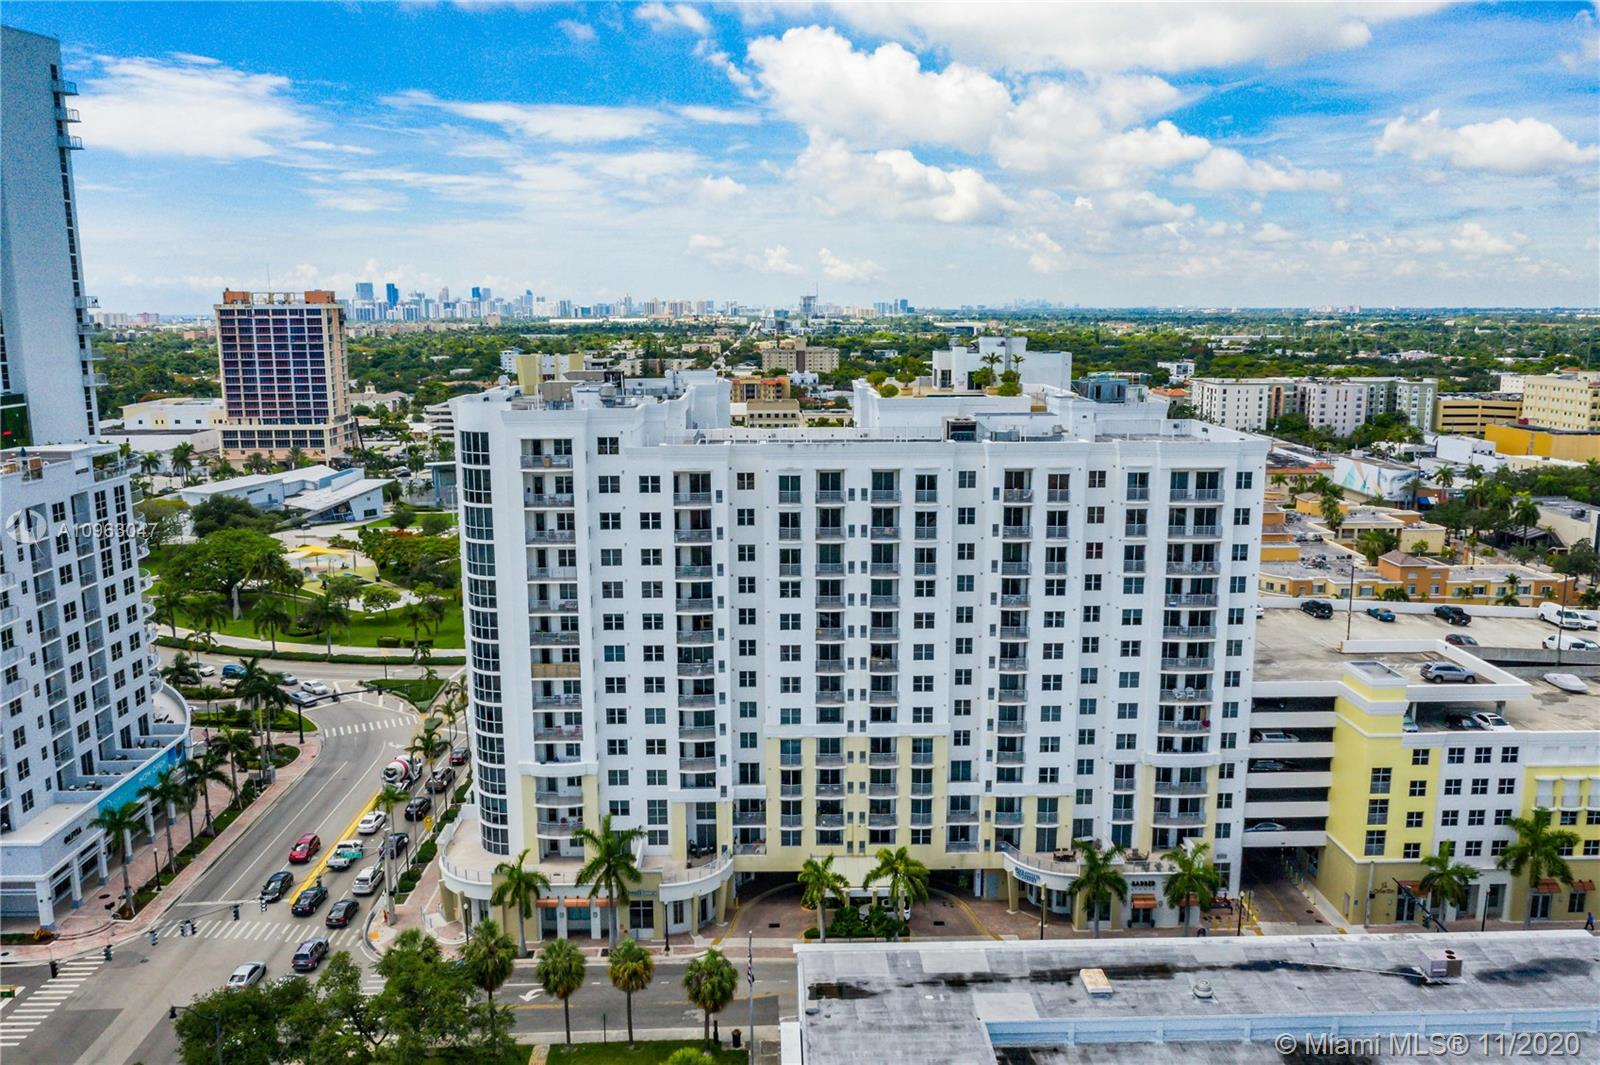 1830 Radius Dr # 909, Hollywood, Florida 33020, 2 Bedrooms Bedrooms, ,2 BathroomsBathrooms,Residential Lease,For Rent,1830 Radius Dr # 909,A10963047